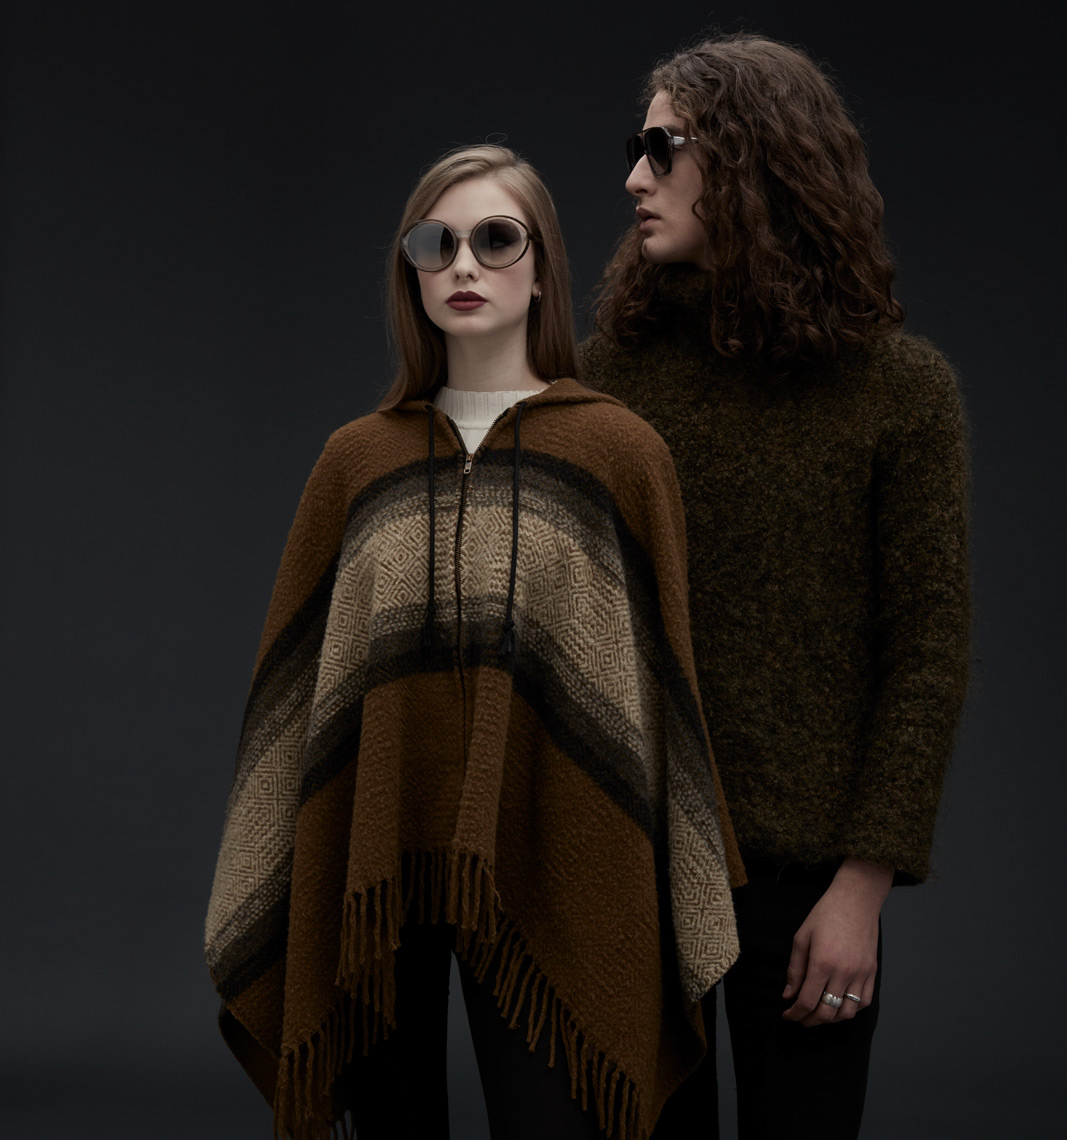 curly haired model wearing wool sweater and glasses looking at straight haired model wearing circular frames San Francisco fashion photographer